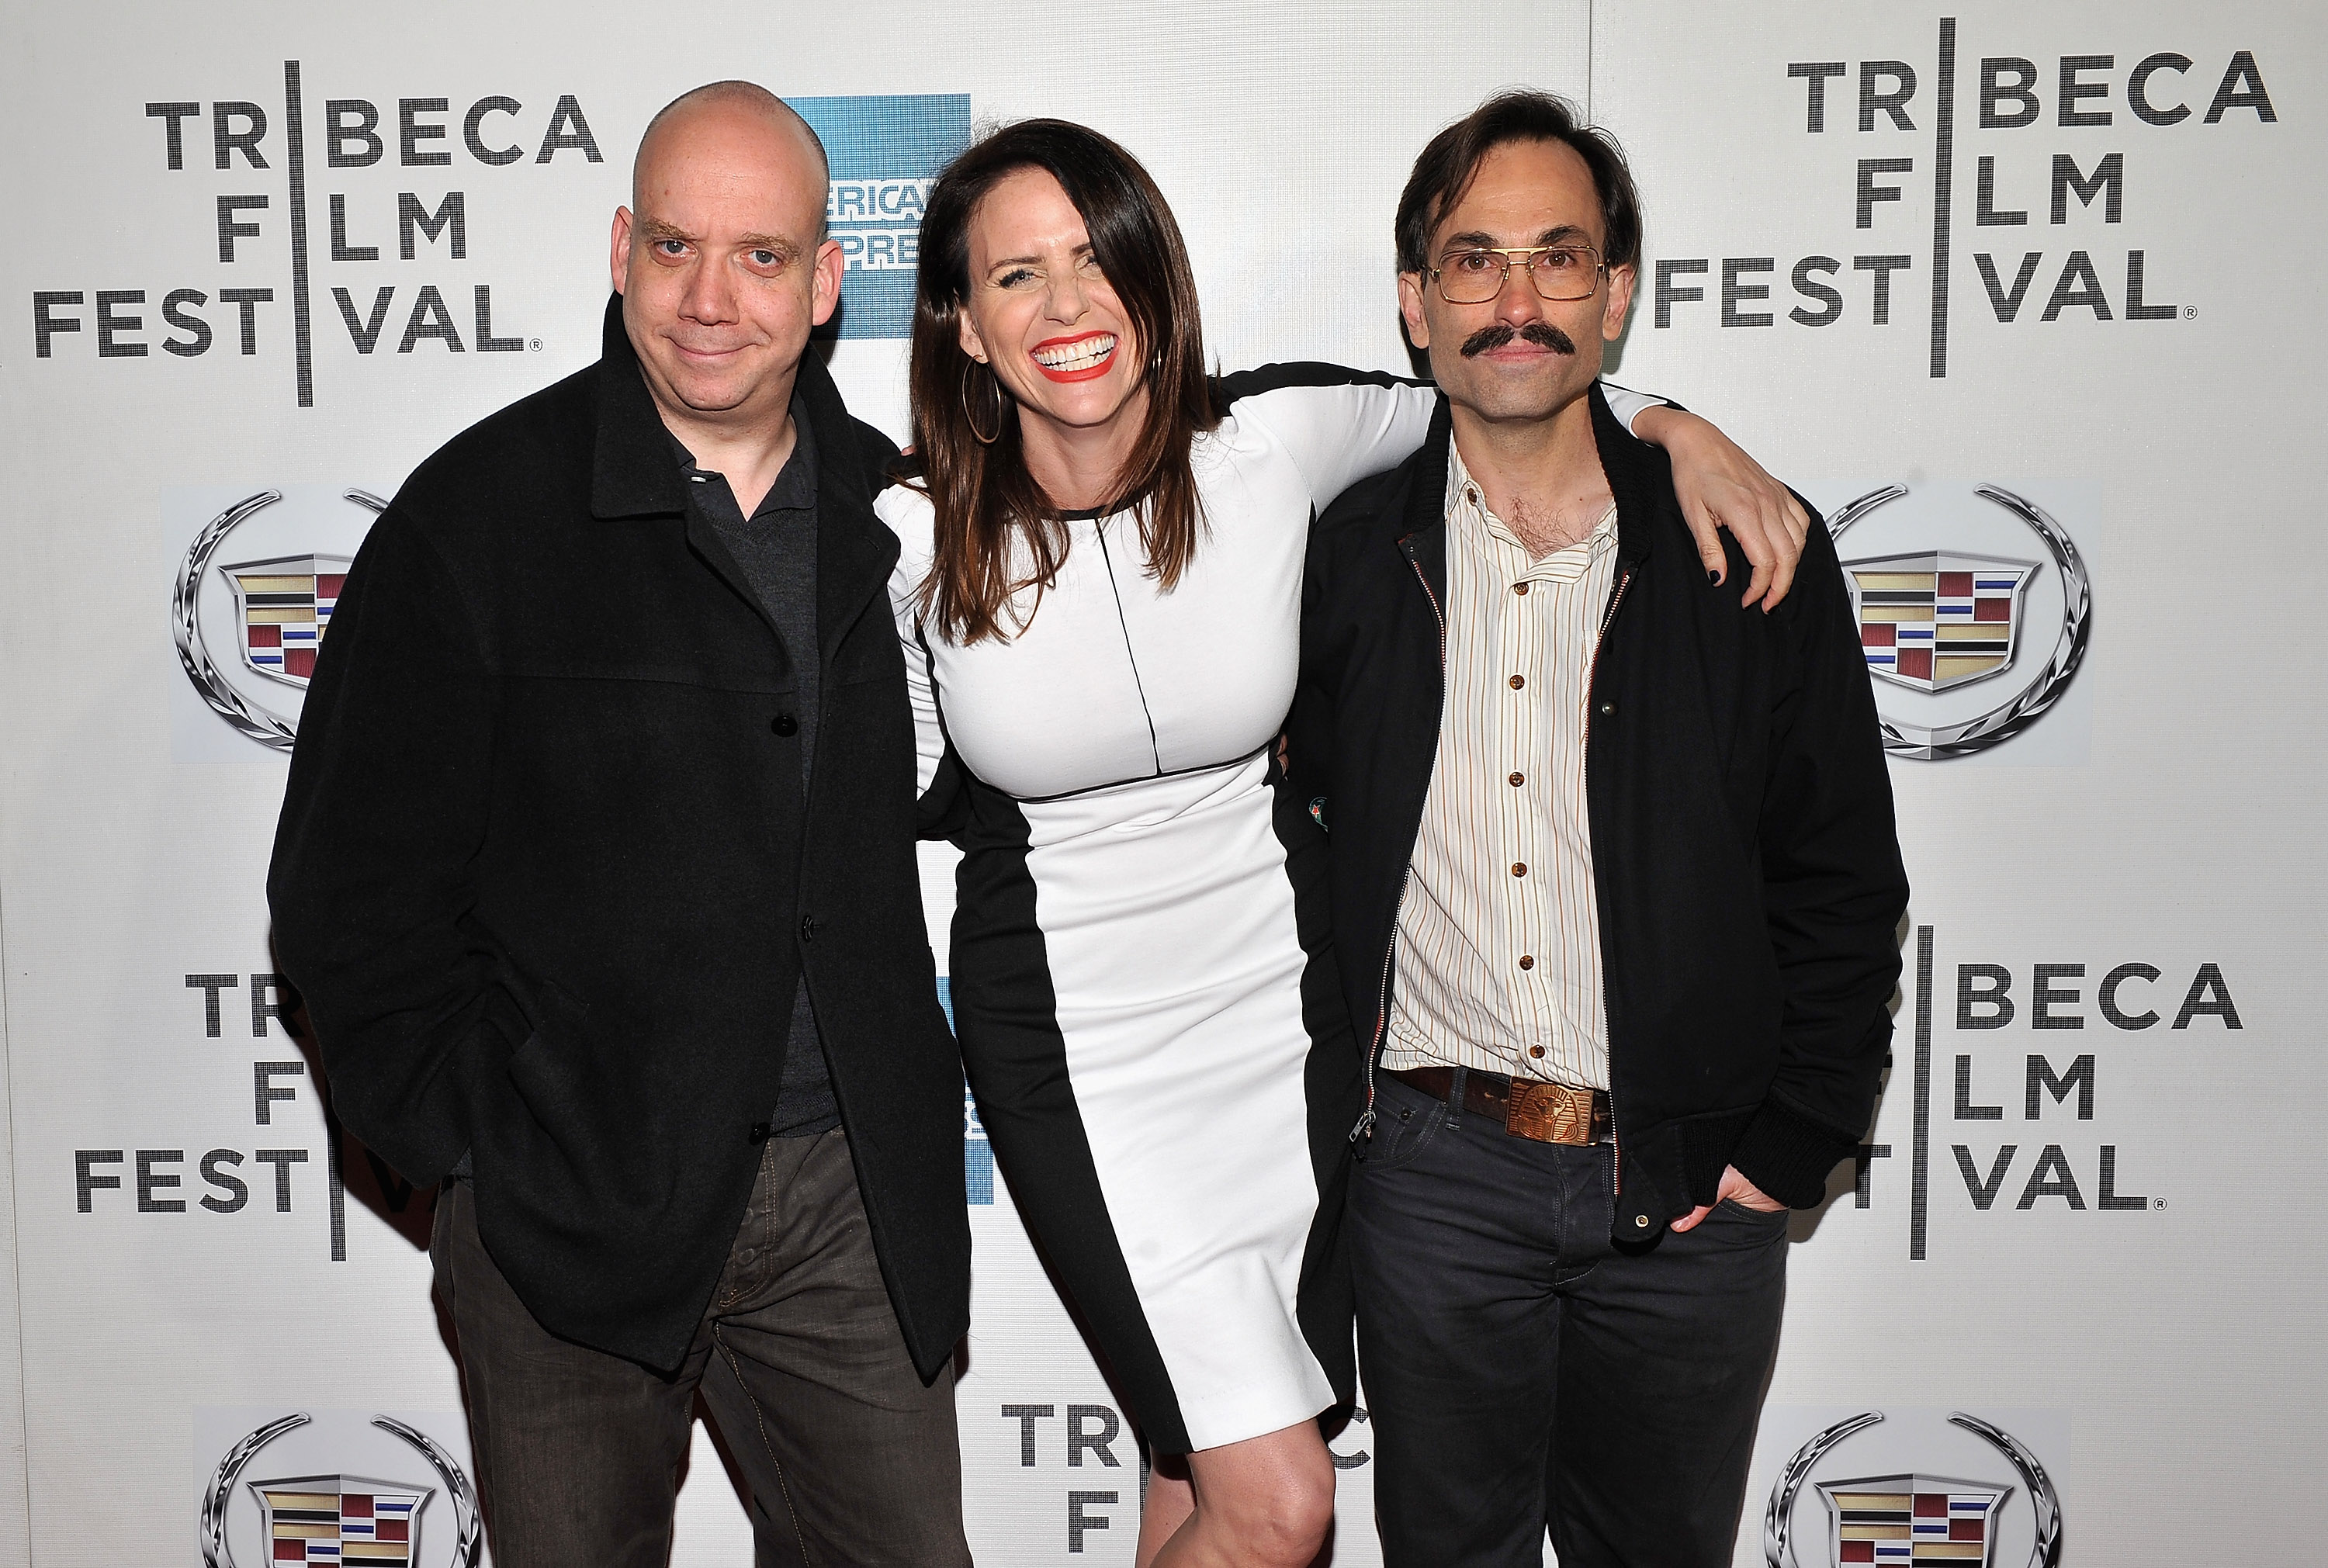 Paul Giamatti posed with Amy Landecker and director Phi